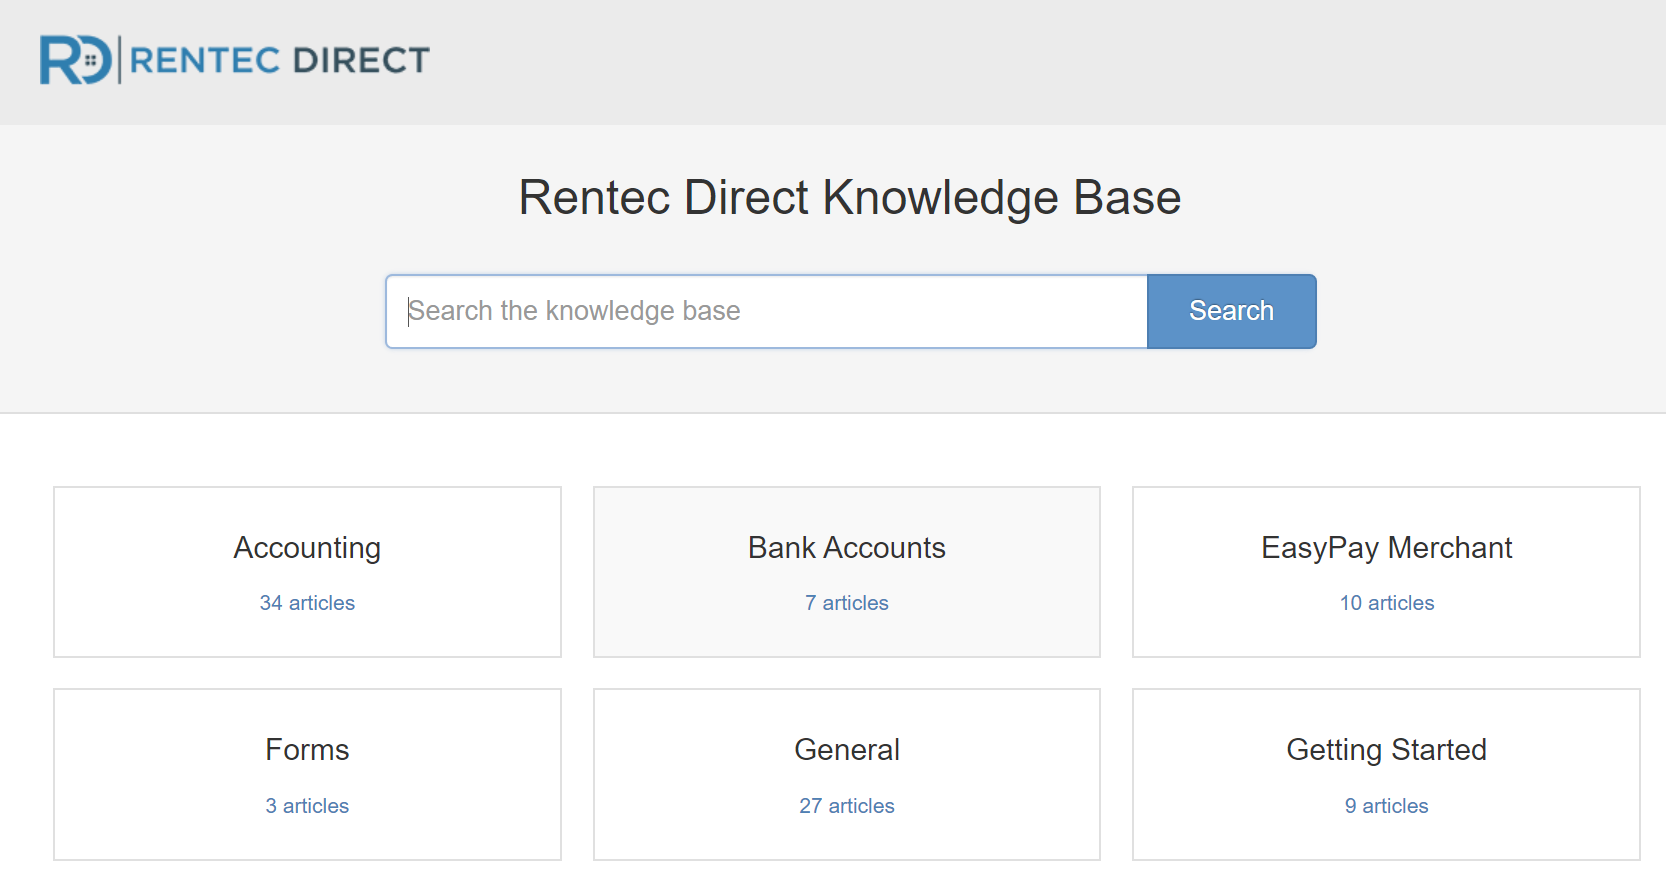 Rentec Direct Knowledge Base